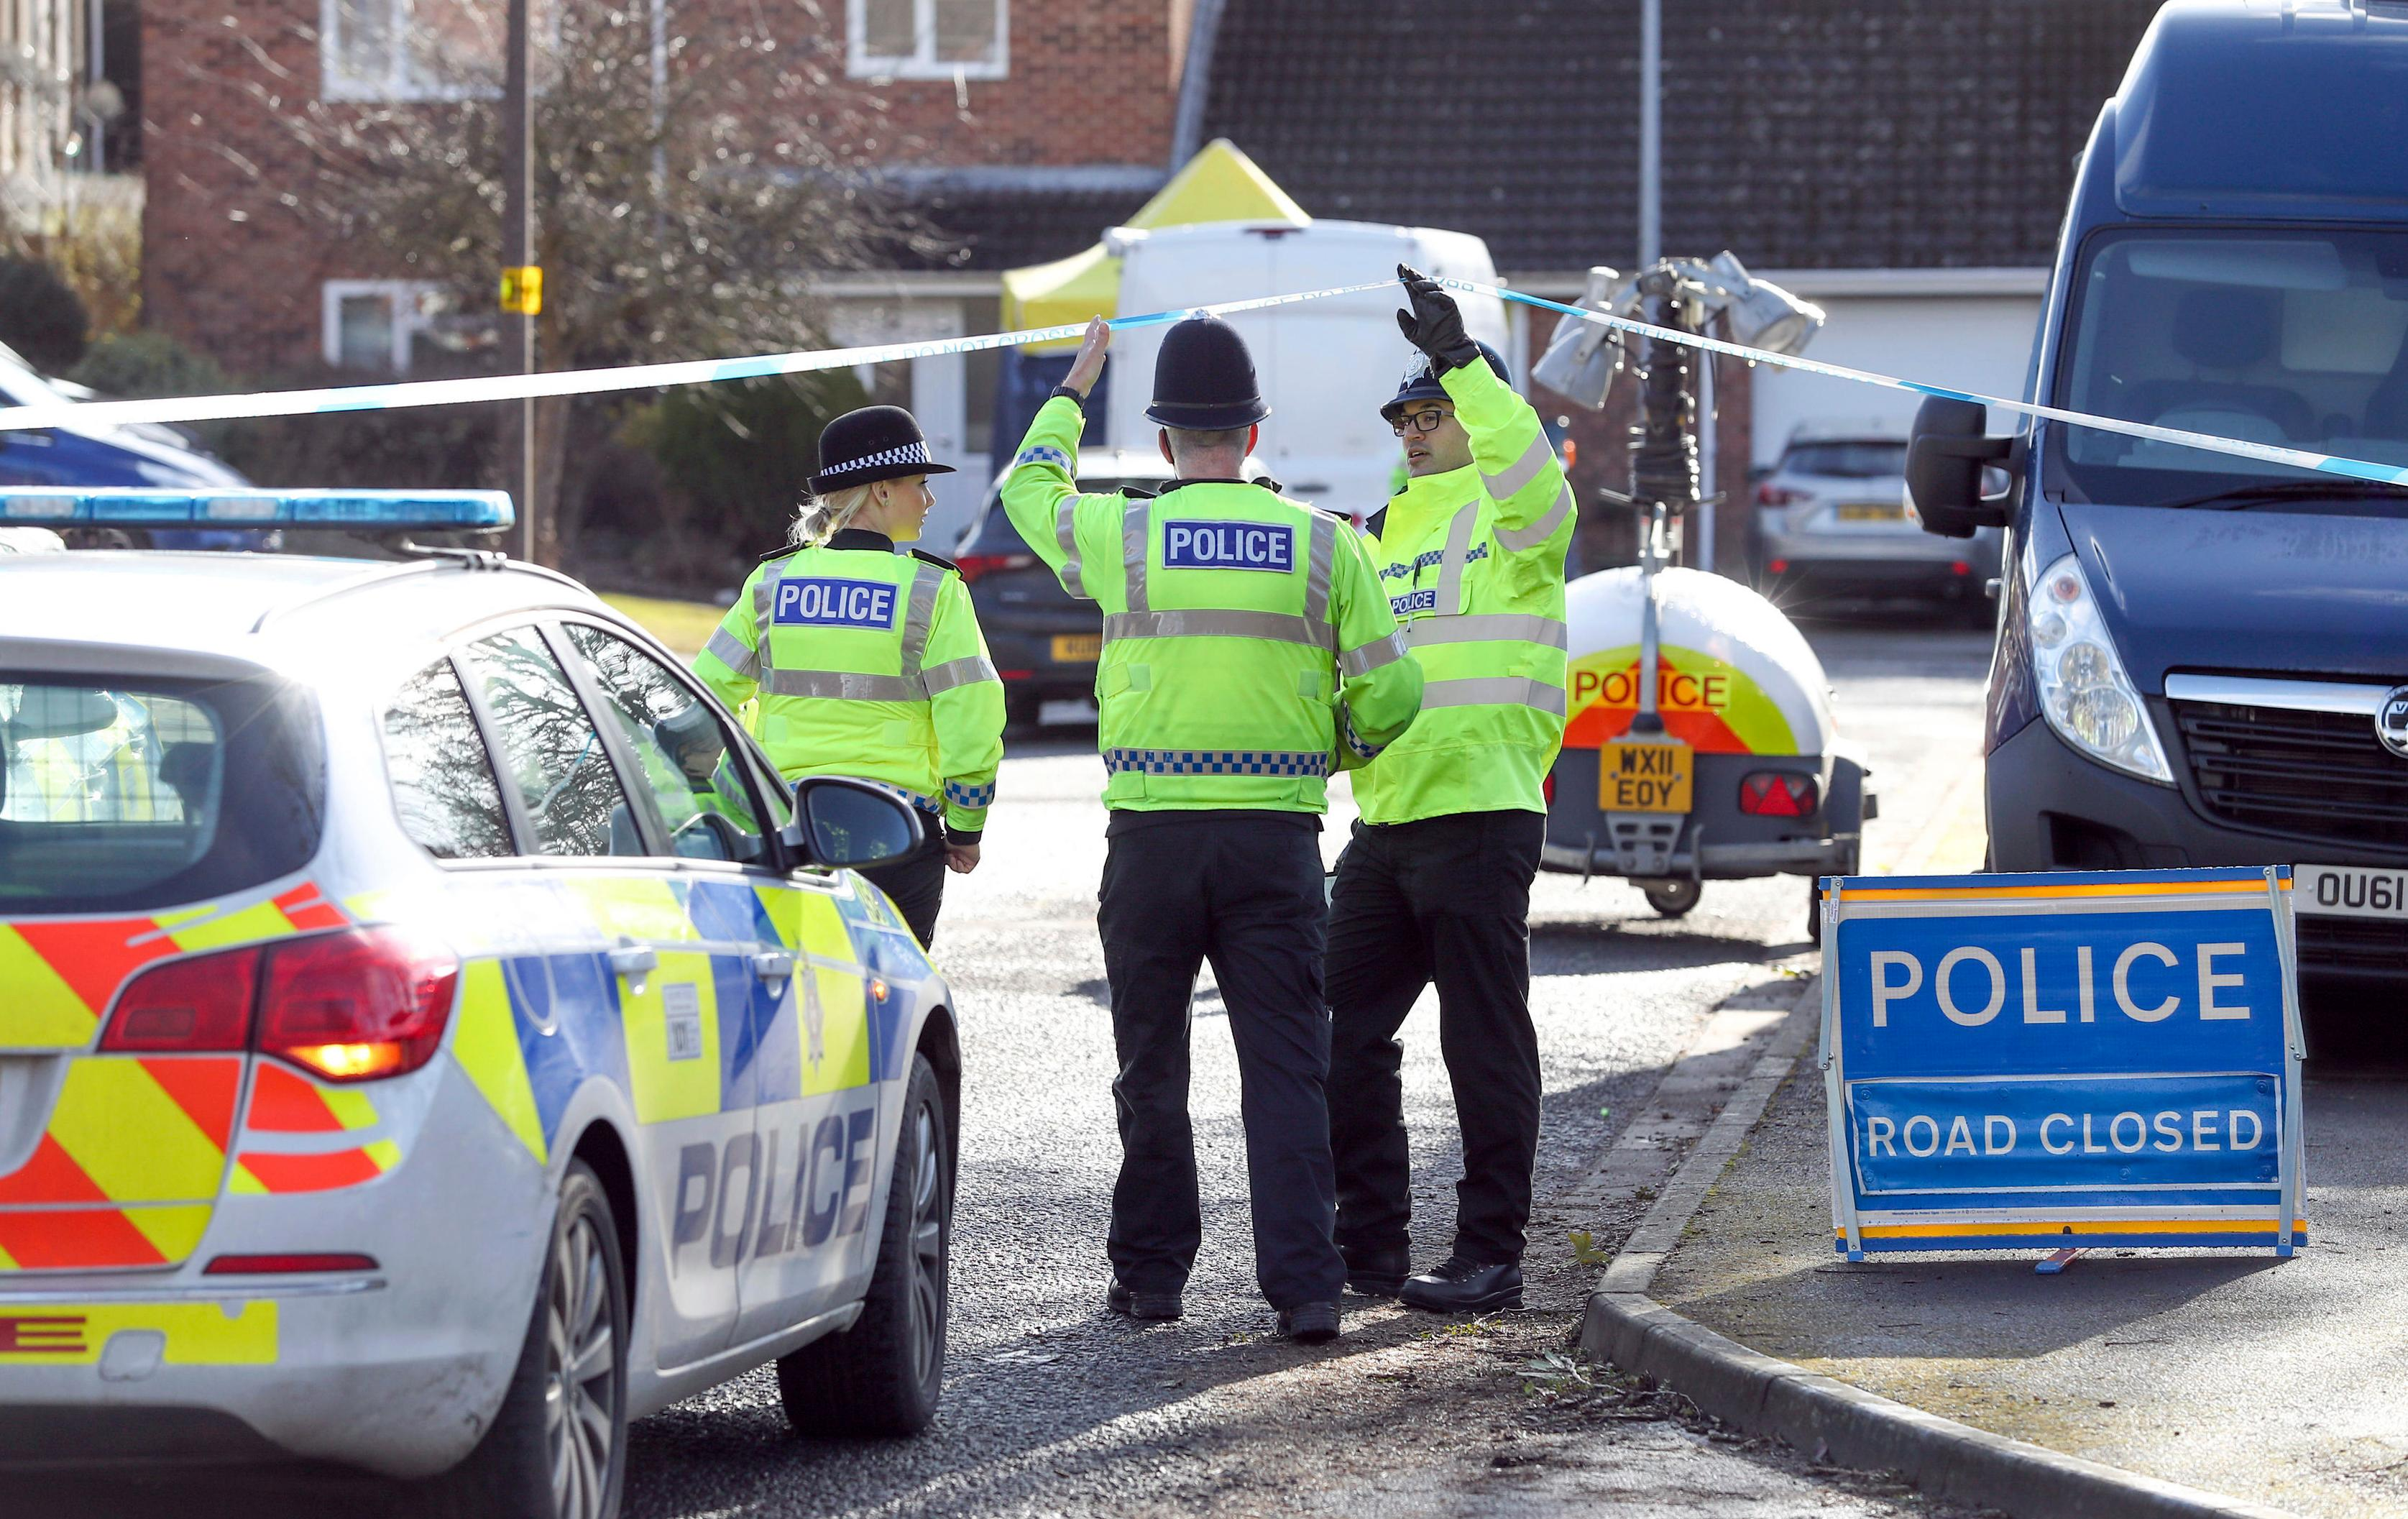 Police officers seal off a cul-de-sac in Salisbury, England, near to the home of former Russian ex-spy Sergei Skripal as a nerve agent is believed to have been used to critically injure him and his daughter Yulia. Britain's Home Secretary says the investigation into the nerve agent attack on a Russian ex-spy and his daughter is focusing on three sites — his home, a pub and a restaurant. (Andrew Matthews/PA via AP)